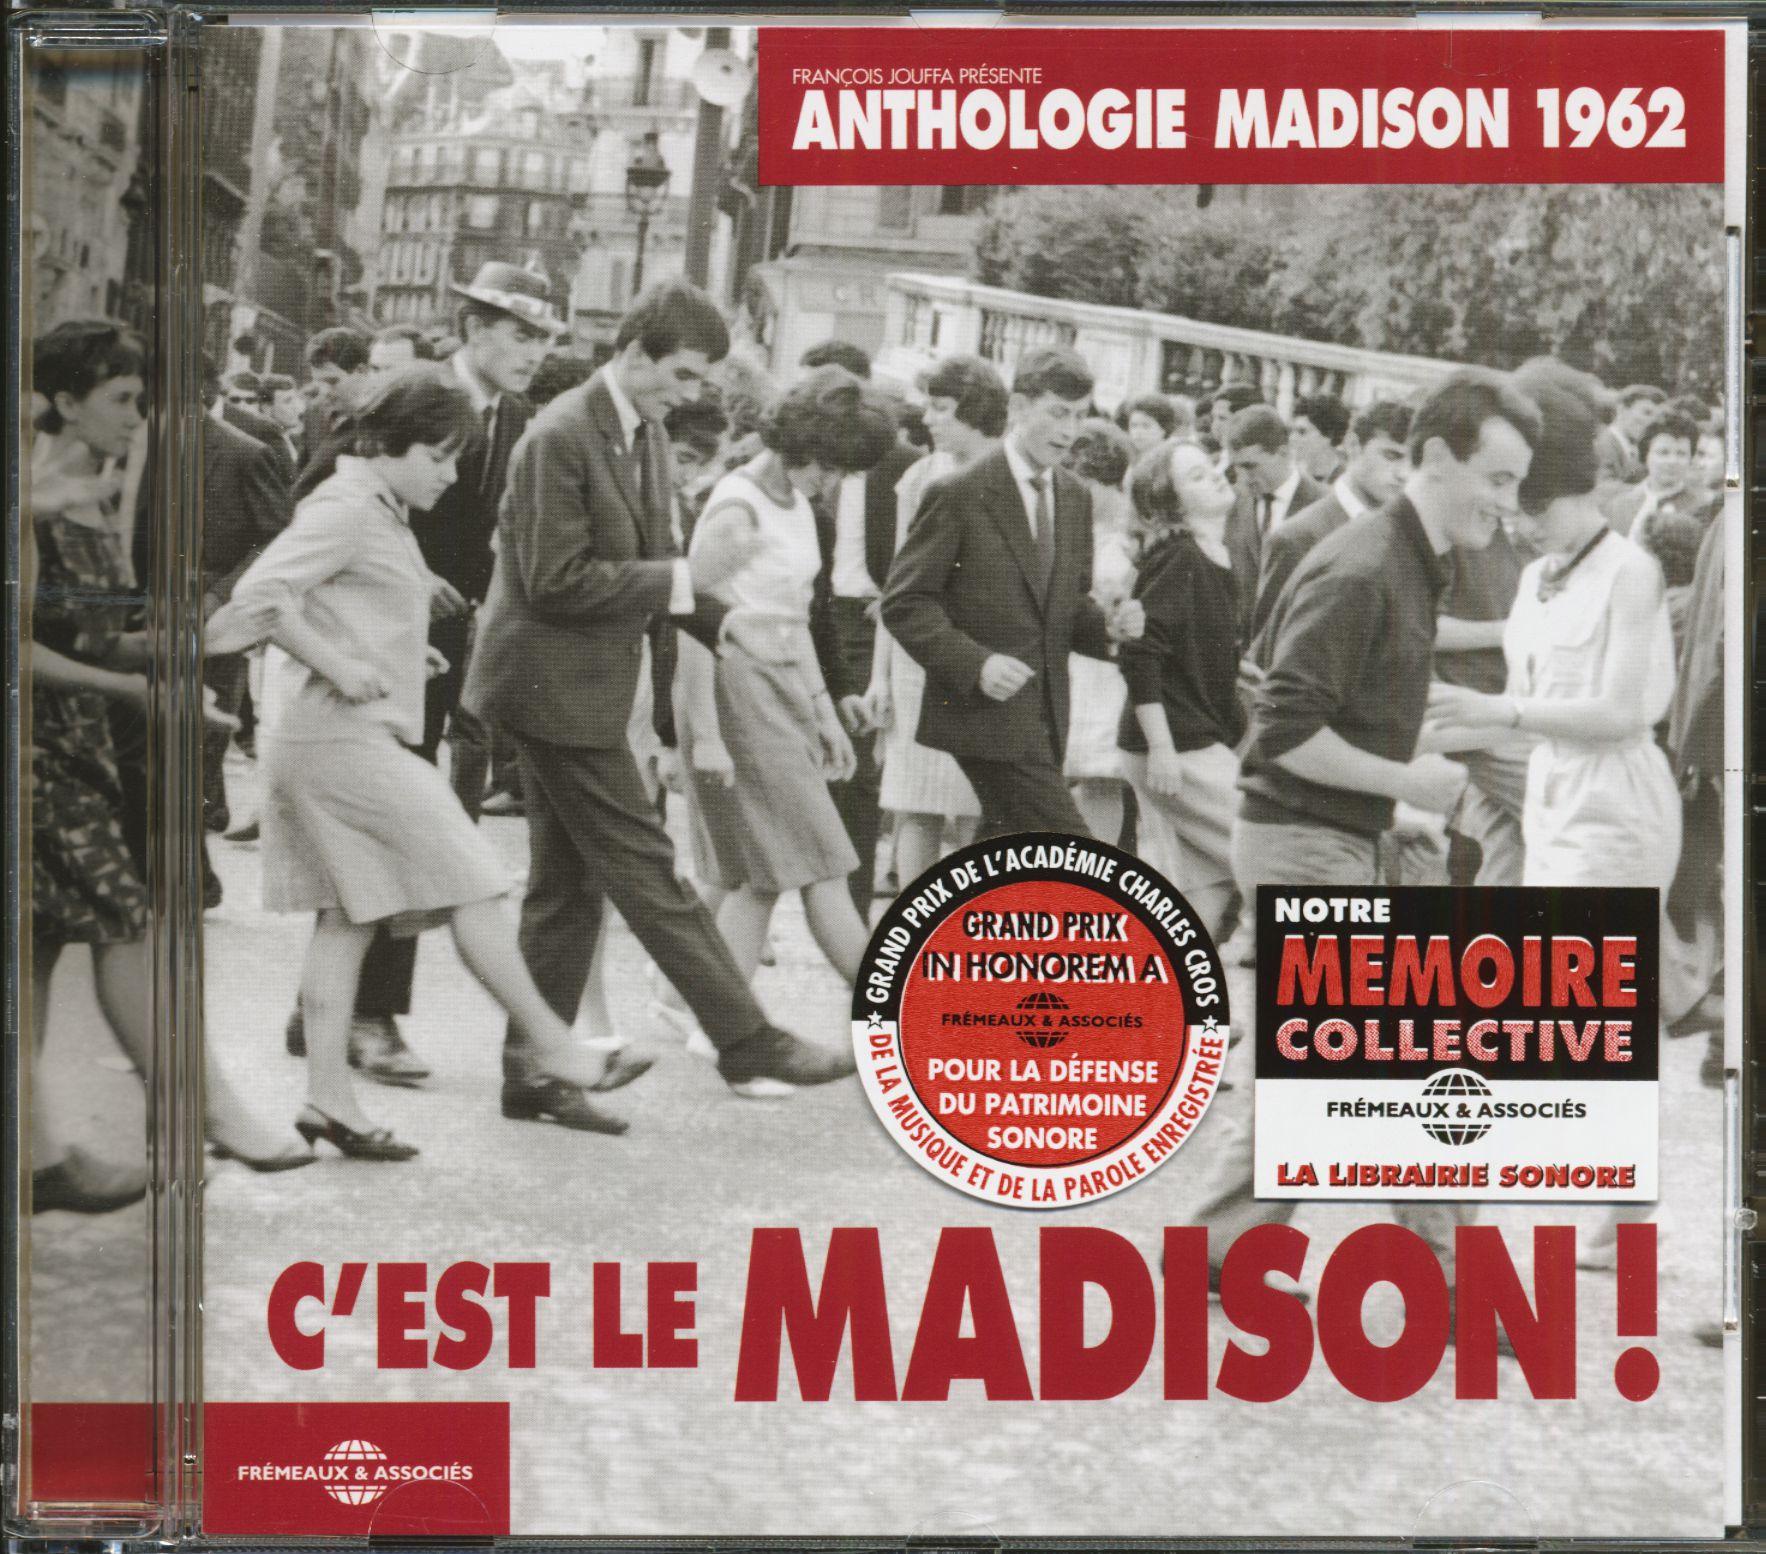 Tiptoeing Through Tulips After Madisons >> Various Cd Anthologie C Est Le Madison 1962 Cd Bear Family